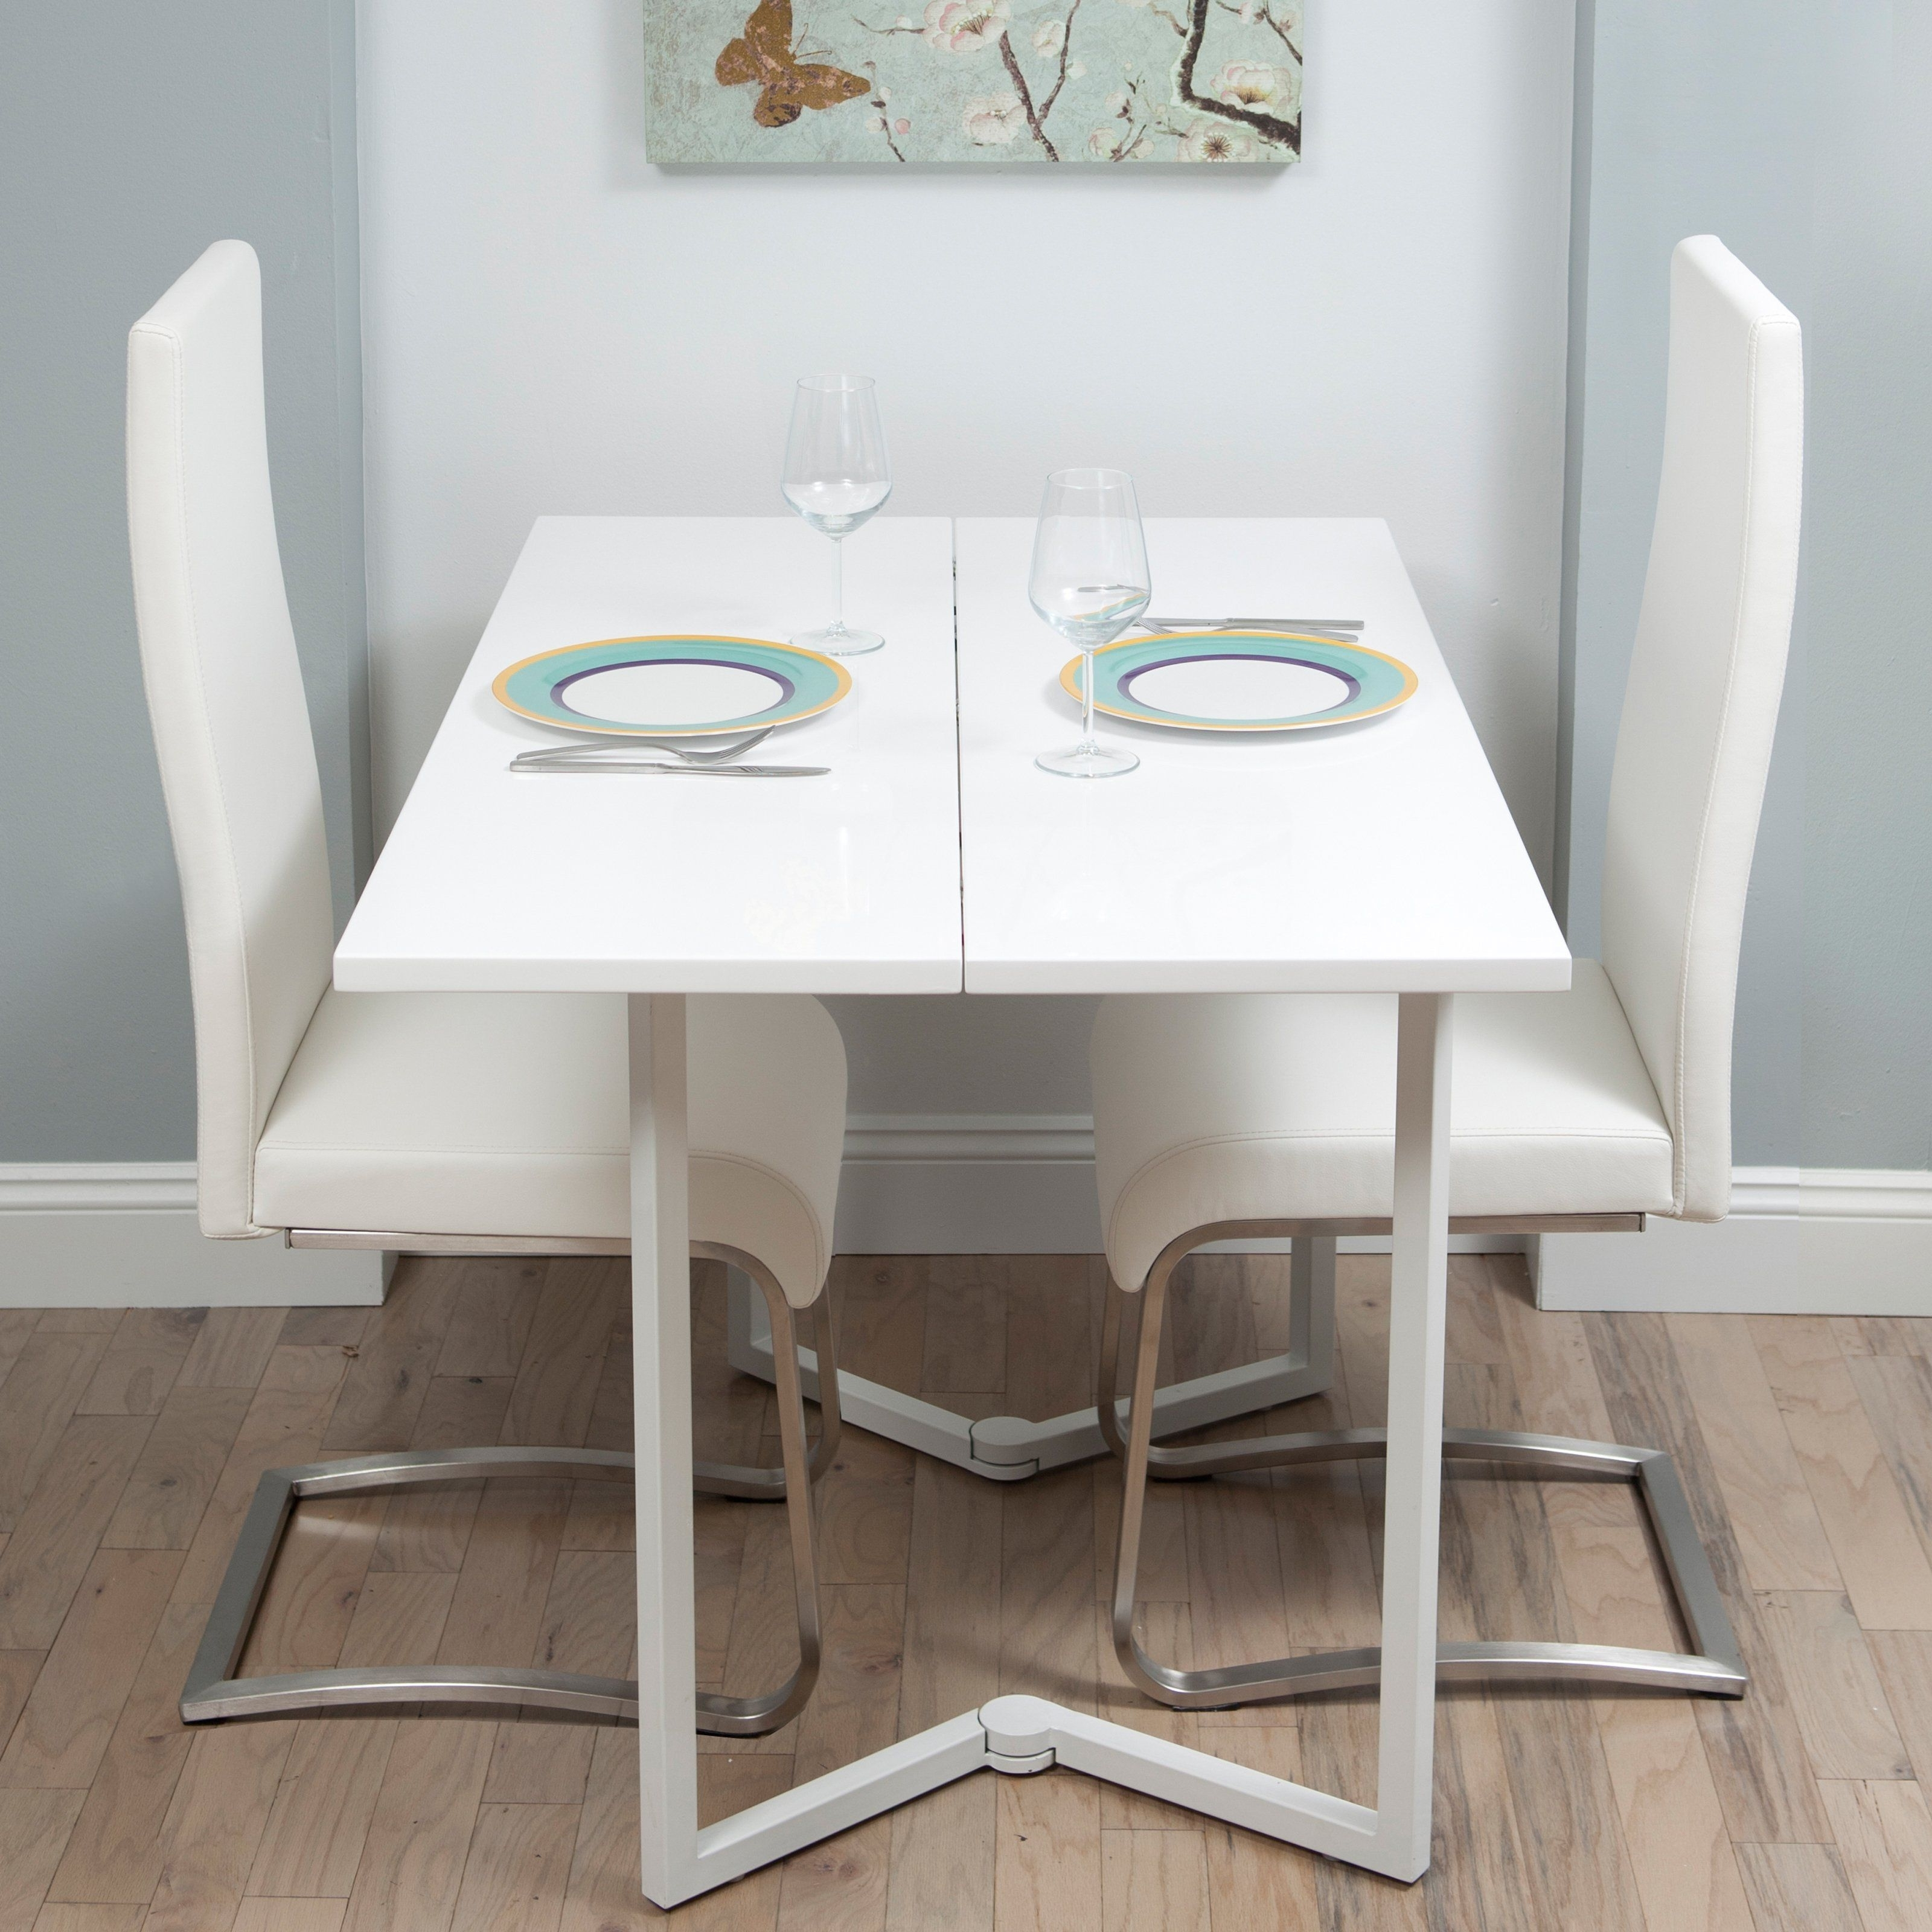 Fascinating Big White Chair Facing Bright Big Folding Dining Table Regarding 2018 Large Folding Dining Tables (View 5 of 25)